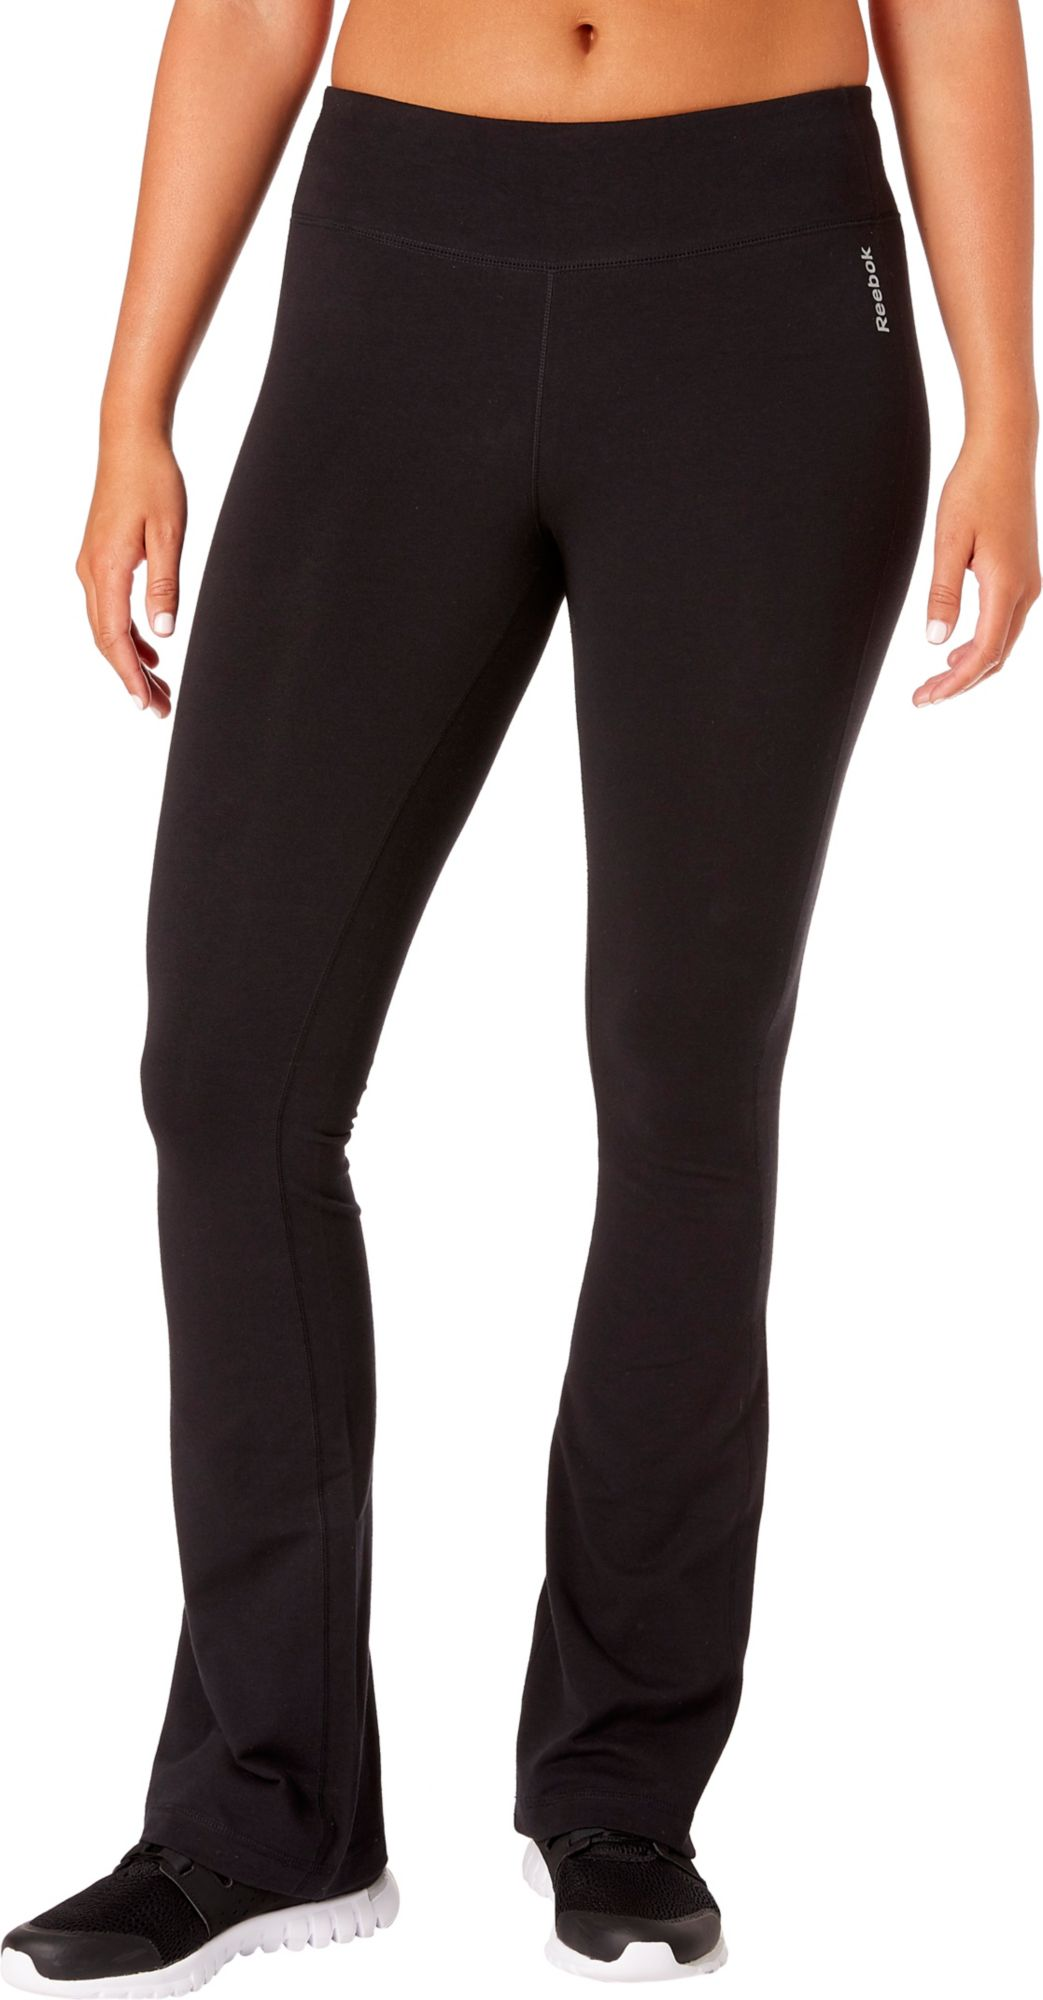 Reebok Women's Stretch Cotton Flare Pants by Reebok